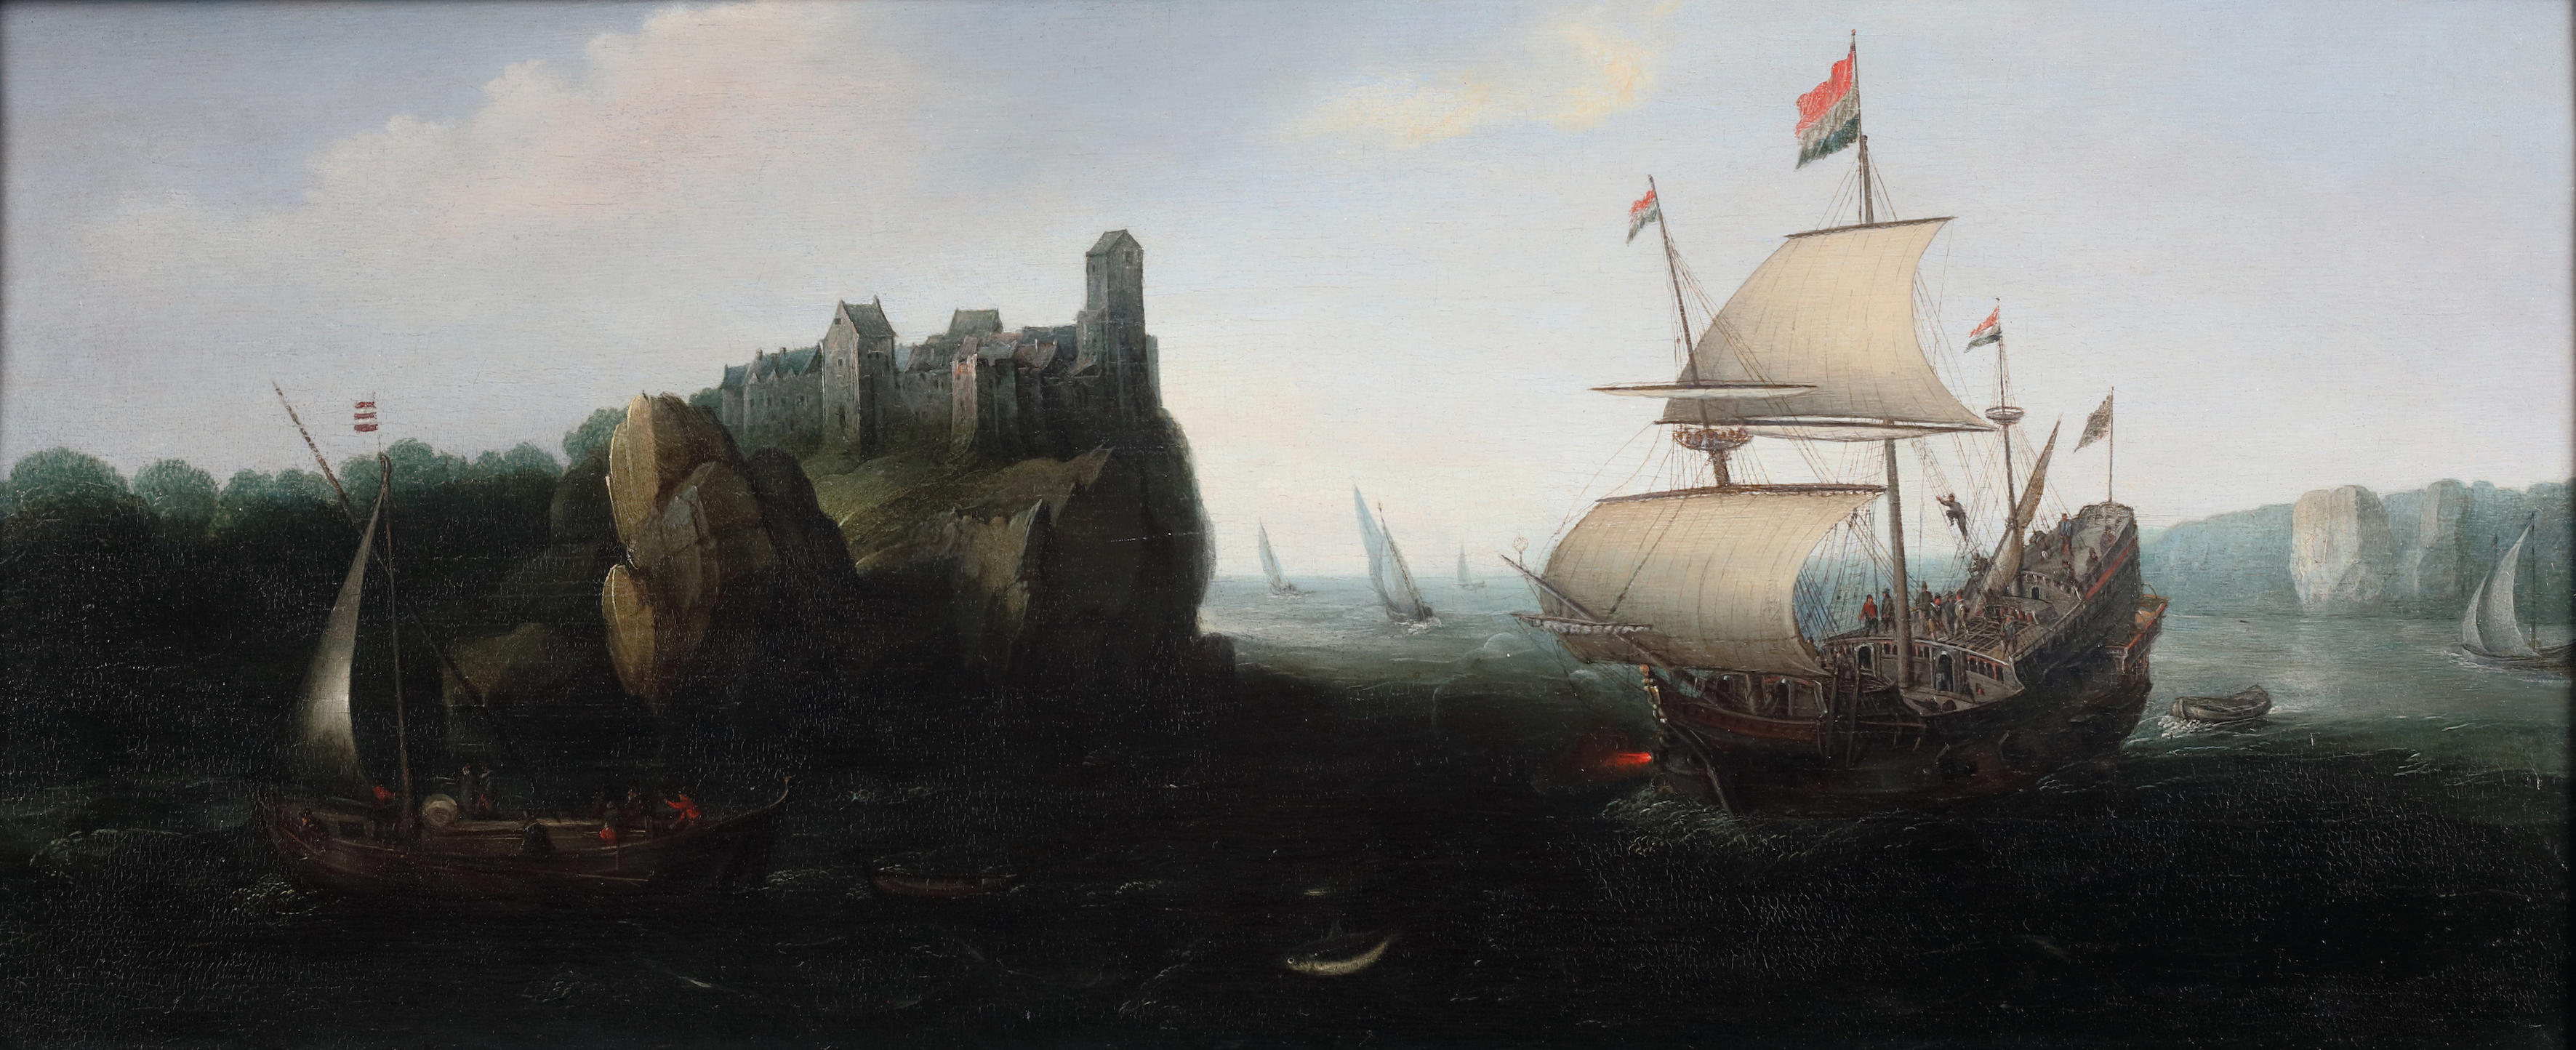 A Dutch fregat in front of a rocky coast landscape with a castle